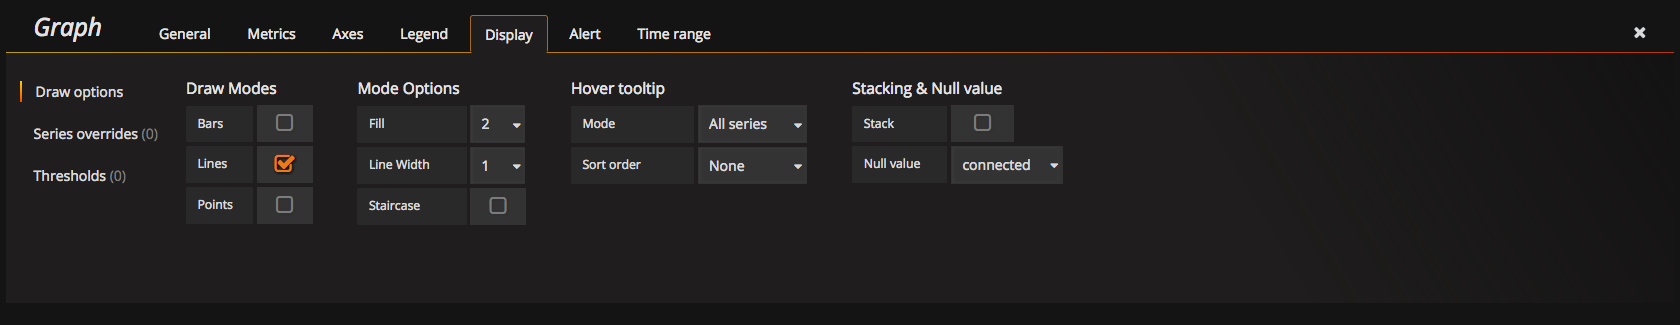 Grafana null value connected